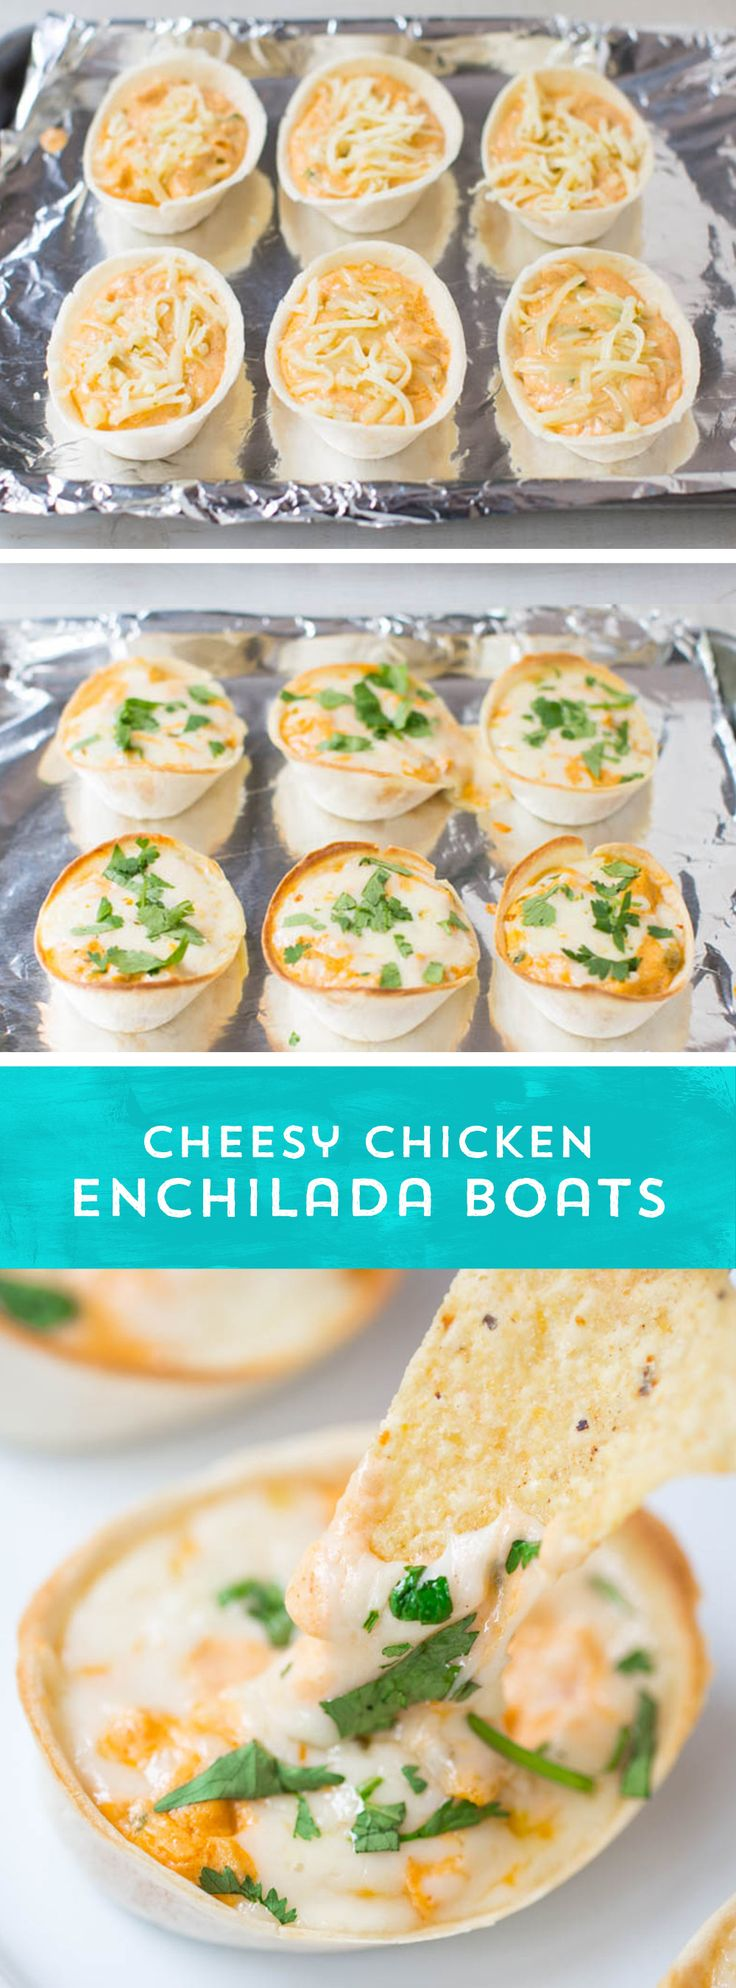 A hand-held dip that you can scoop onto chips, then roll up and eat like a taco? YES PLEASE! These Cheesy Chicken Enchilada Boats from @iheartnaptime are absolutely perfect for parties or after-school snacks. They pack all the enchilada flavors you love in an easy-to-eat boat, that you can scoop on top of chips! Bonus: they're ready to eat  in just 35 minutes.